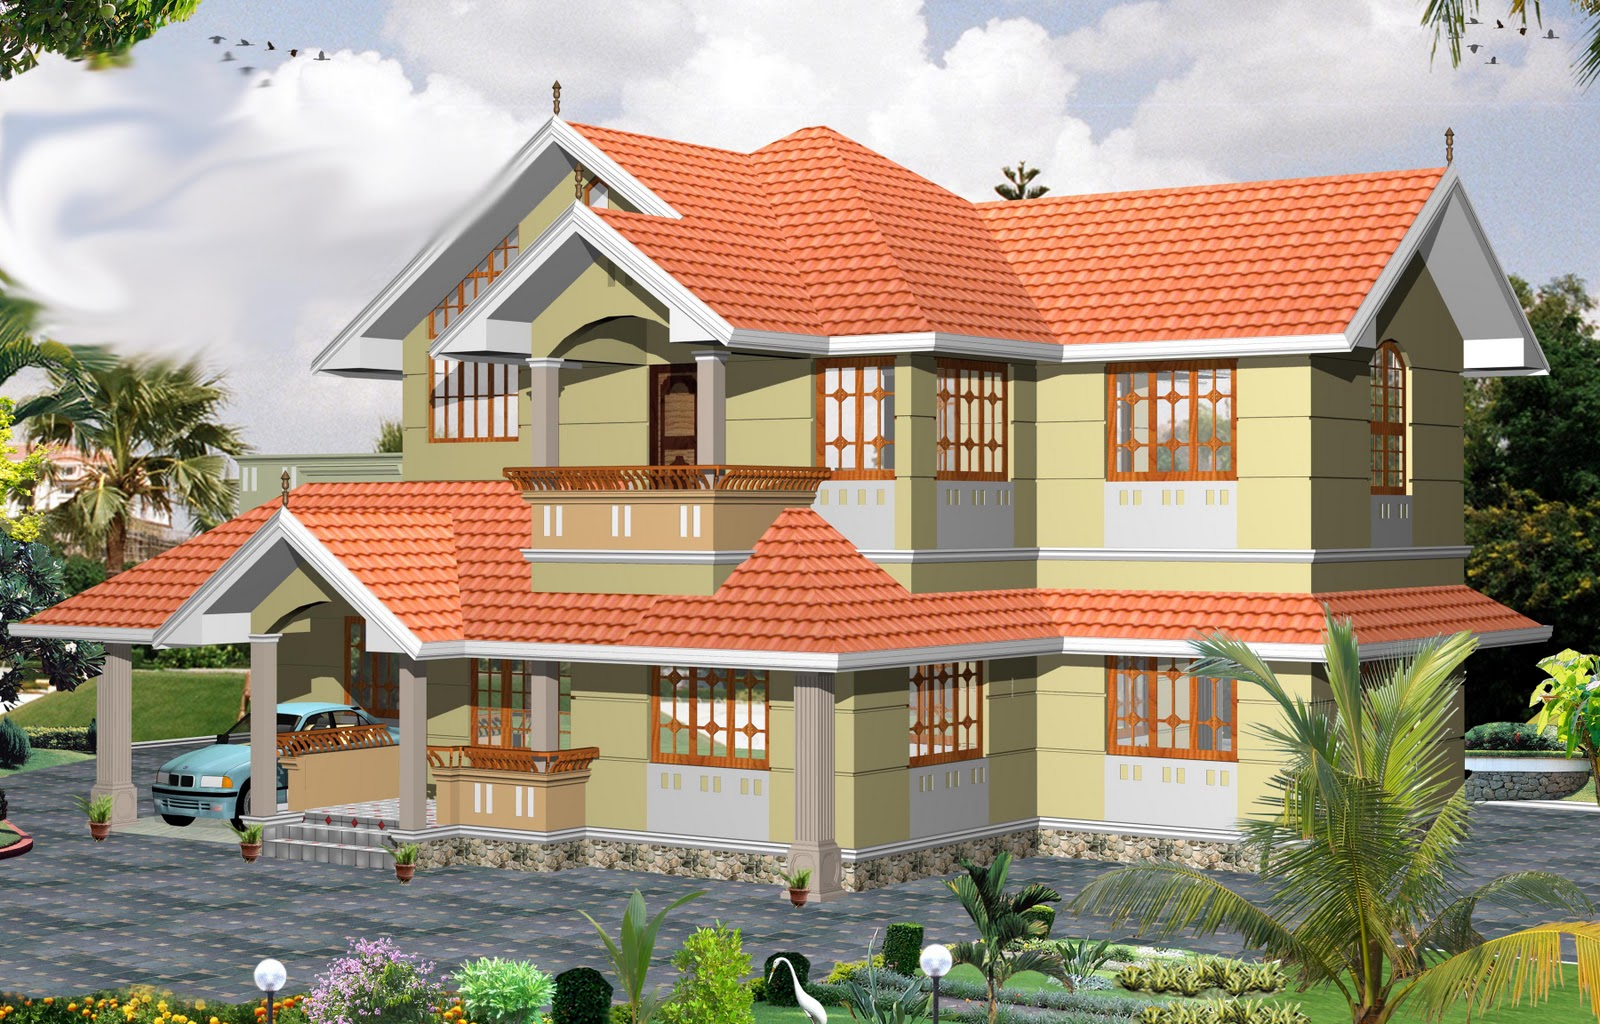 Kerala building construction 2000 sqft 3bhk house plan kerala home floor plans with photo House plan design